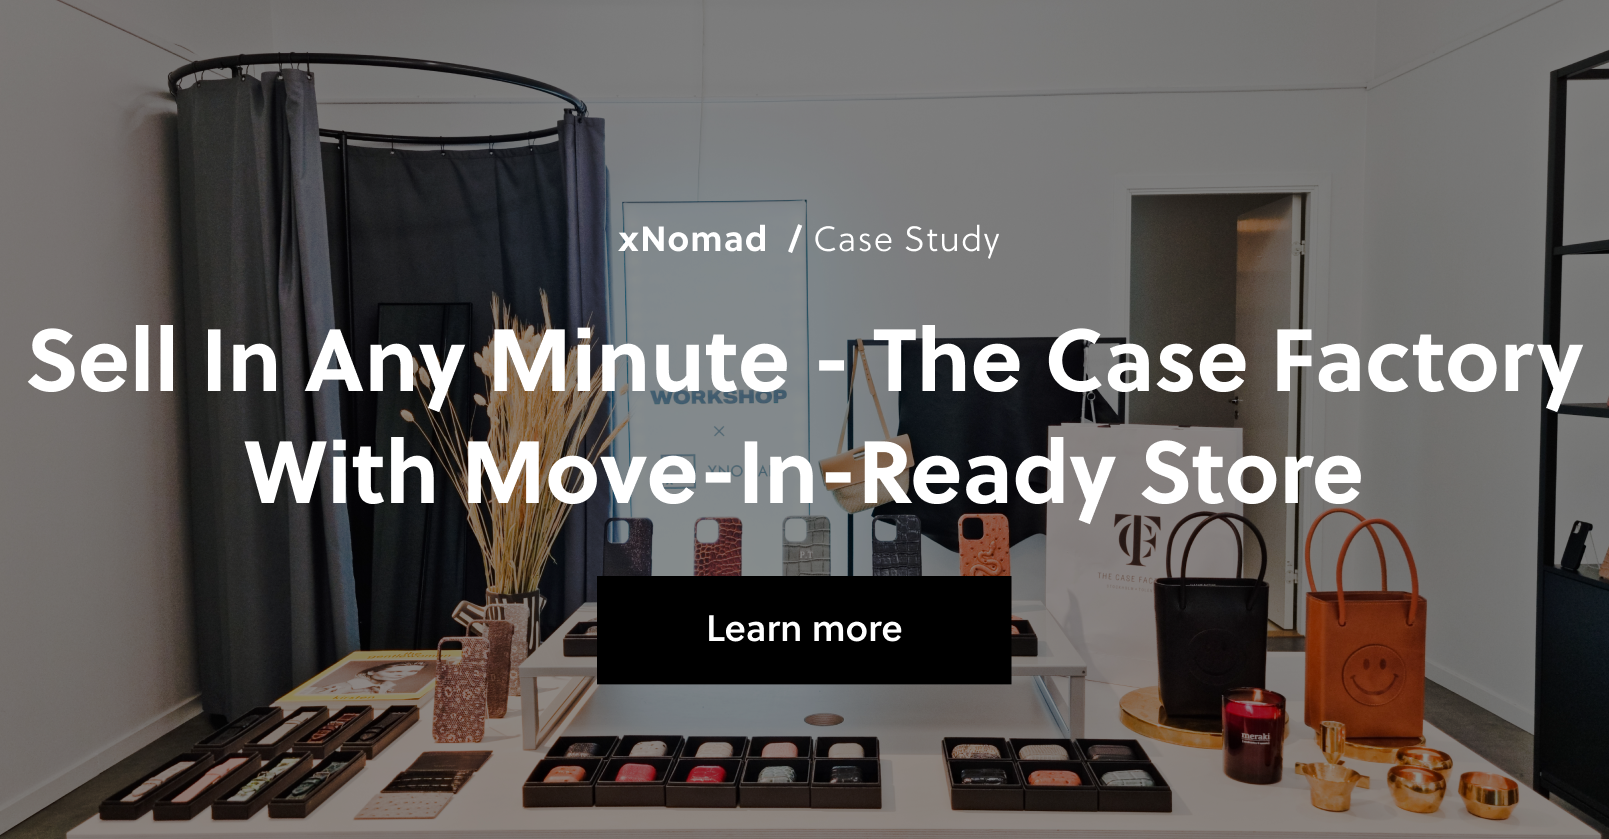 Sell in any minute - The Case Factory with Move-in-Ready Store